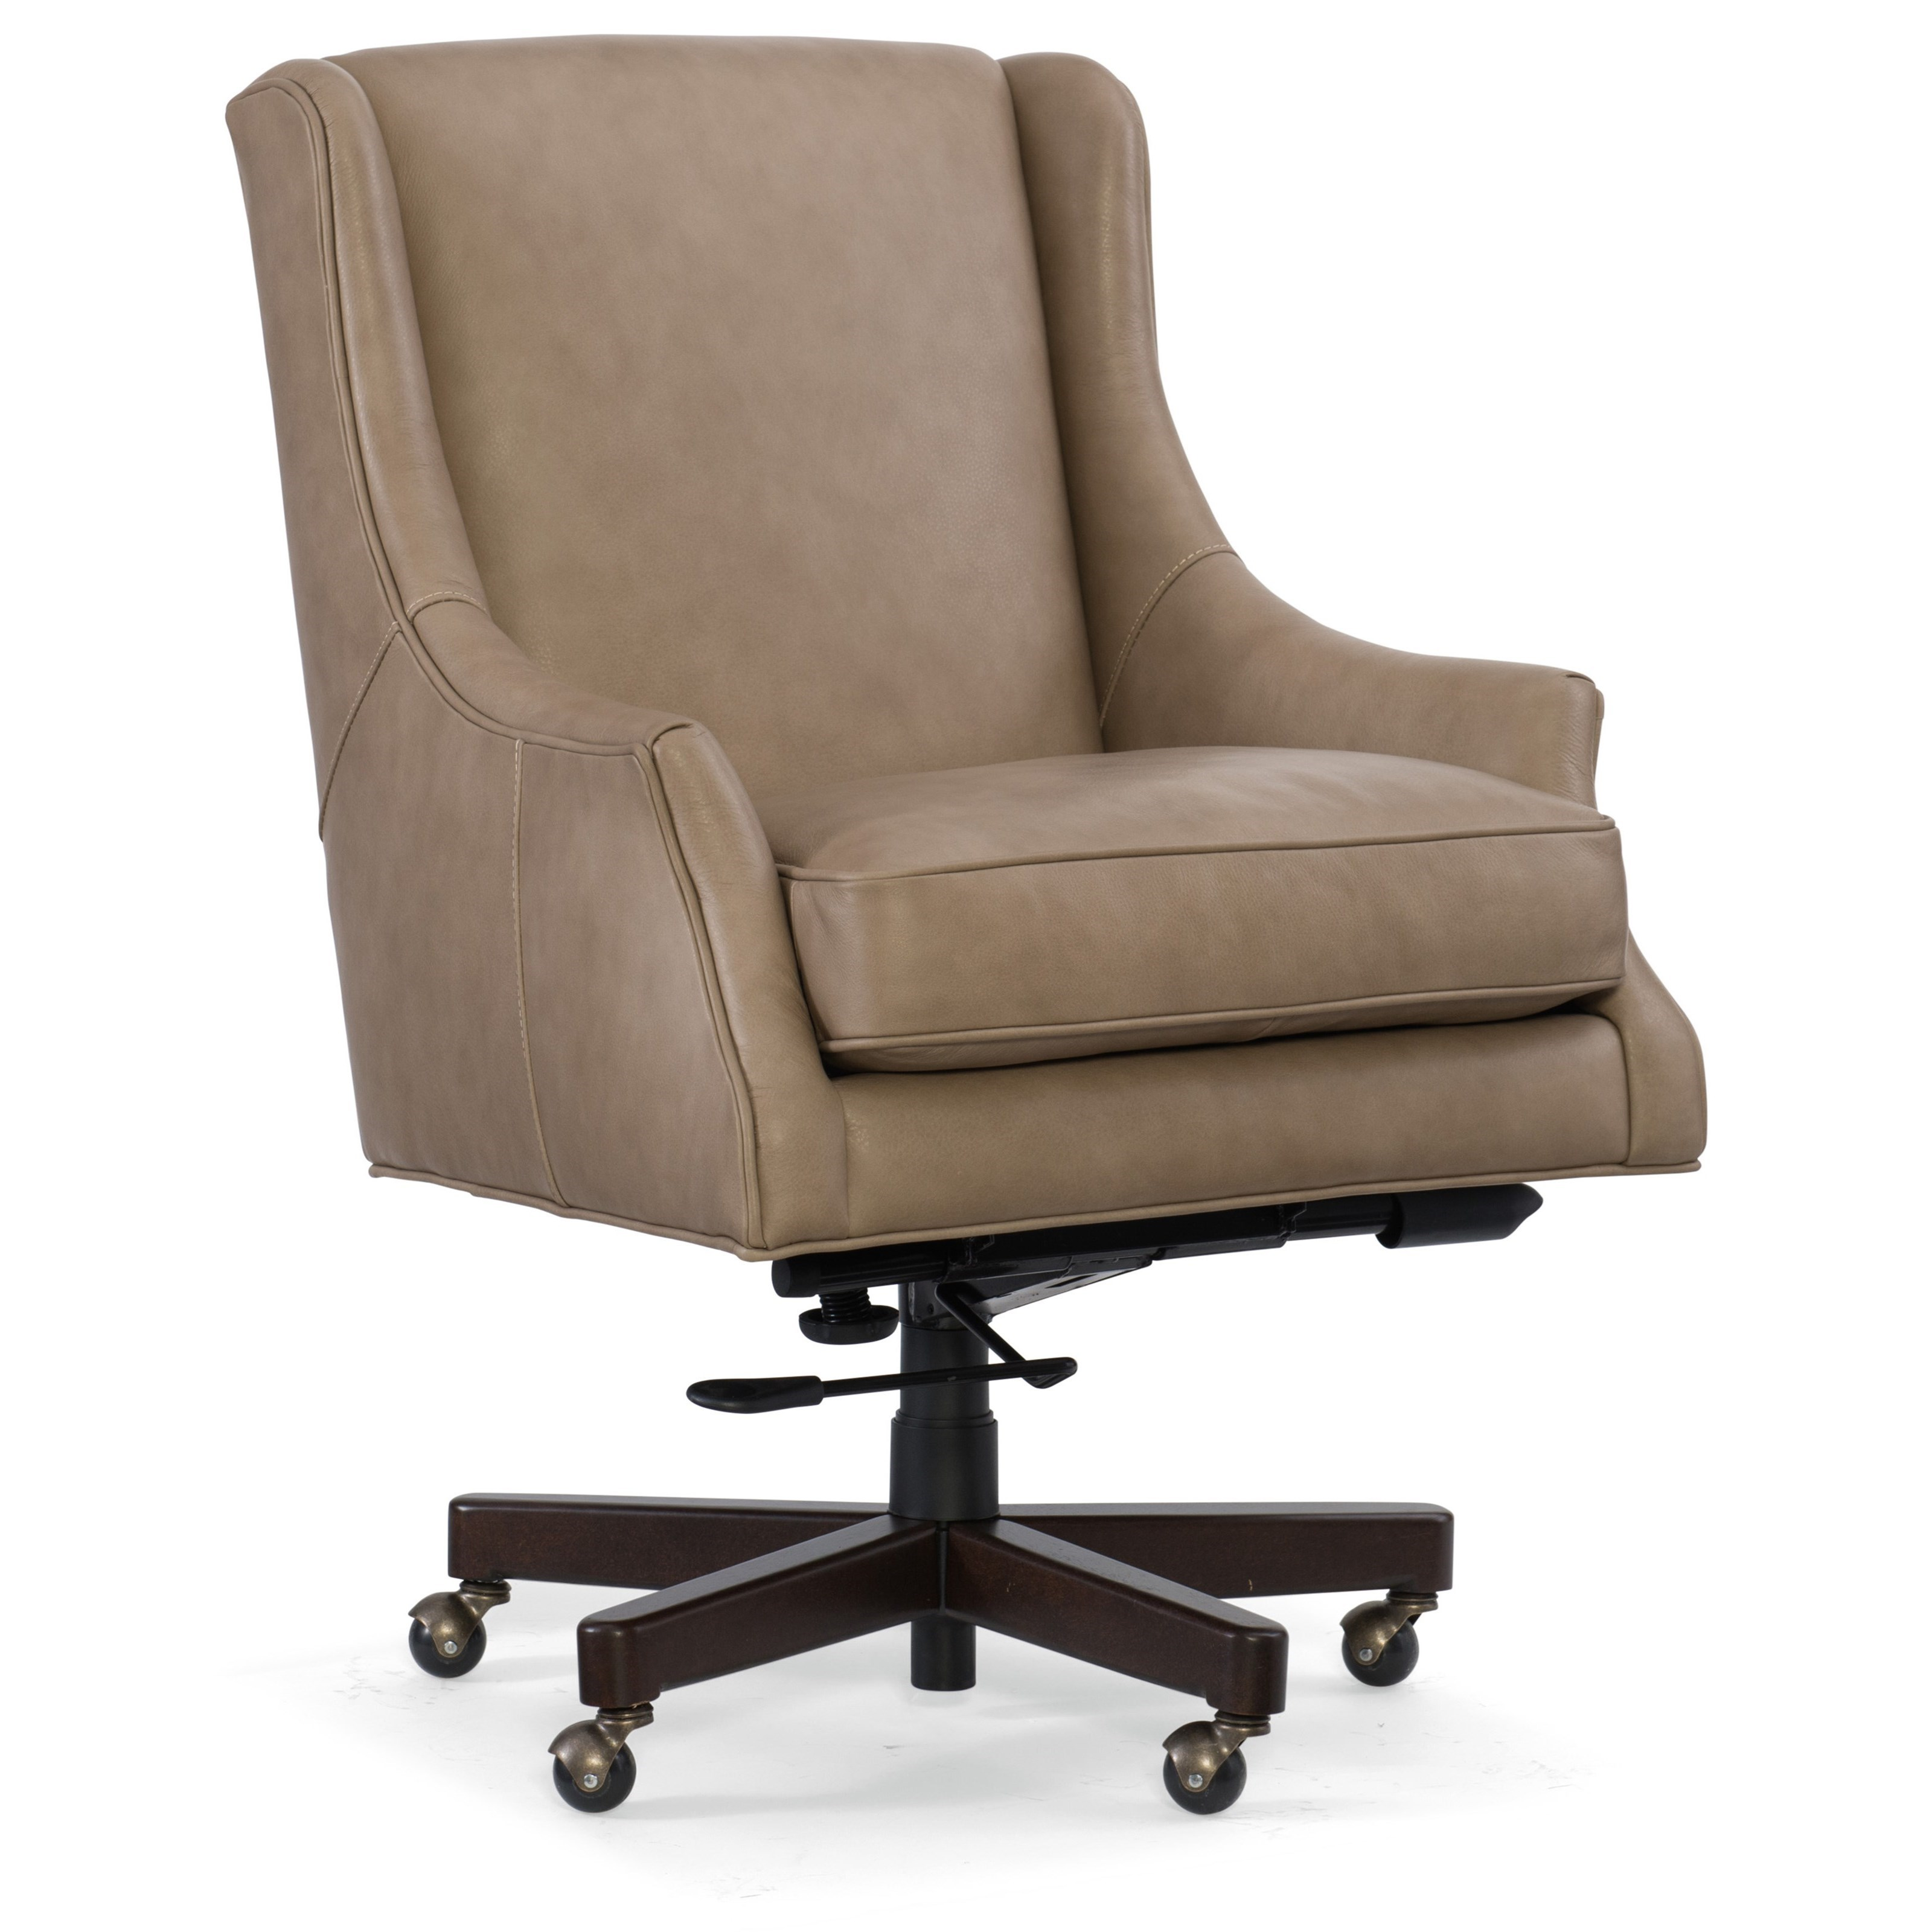 Hooker furniture executive seating shelley home office chair item number ec485 083